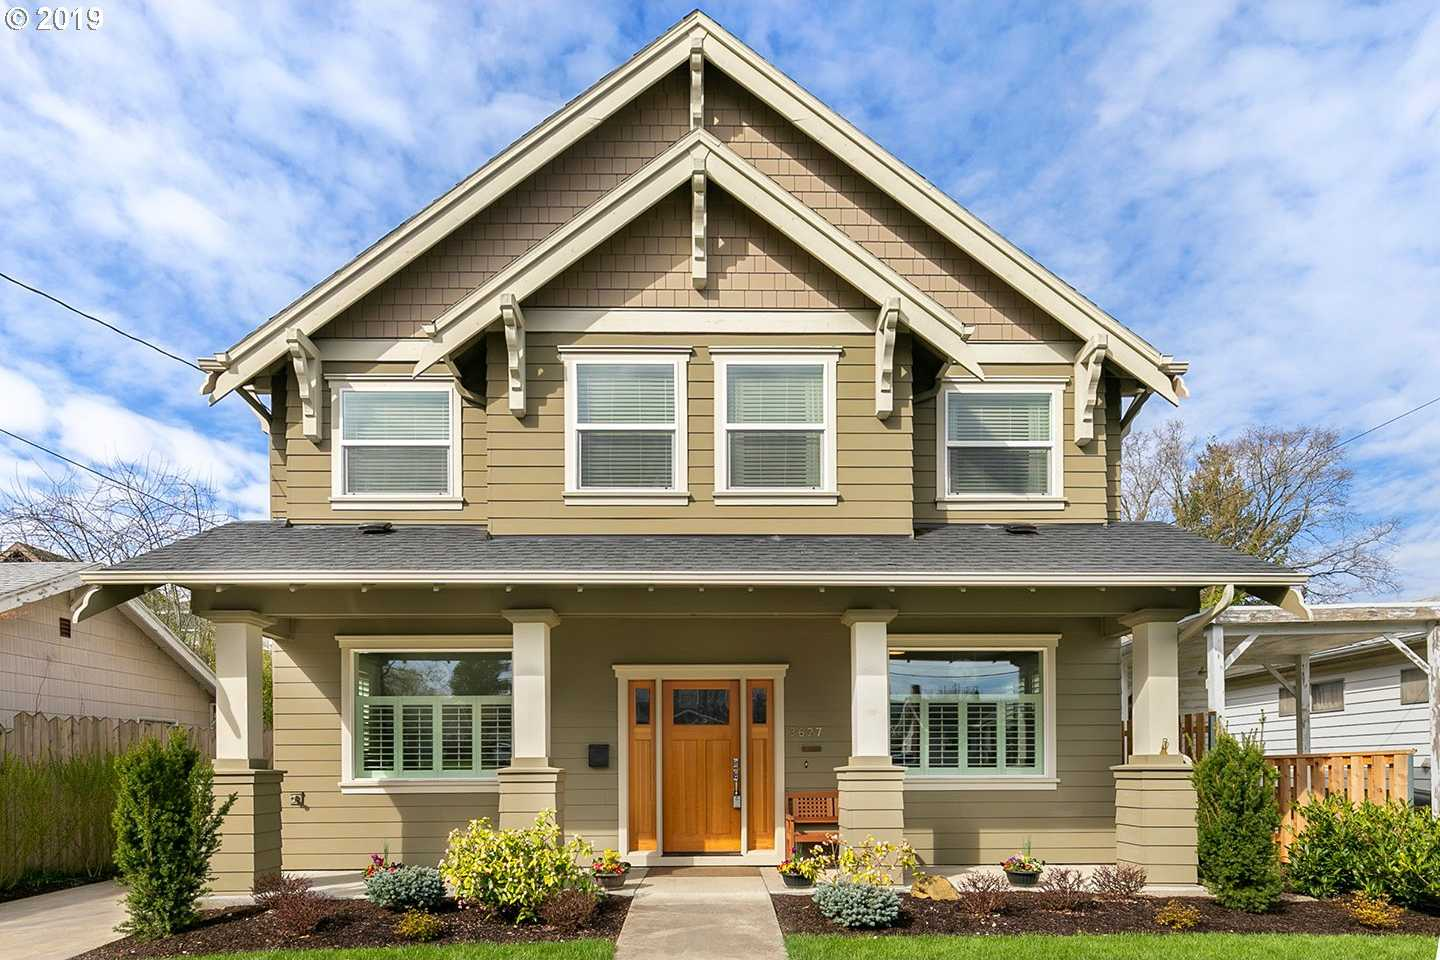 $869,000 - 4Br/3Ba -  for Sale in Beaumont-wilshire, Portland